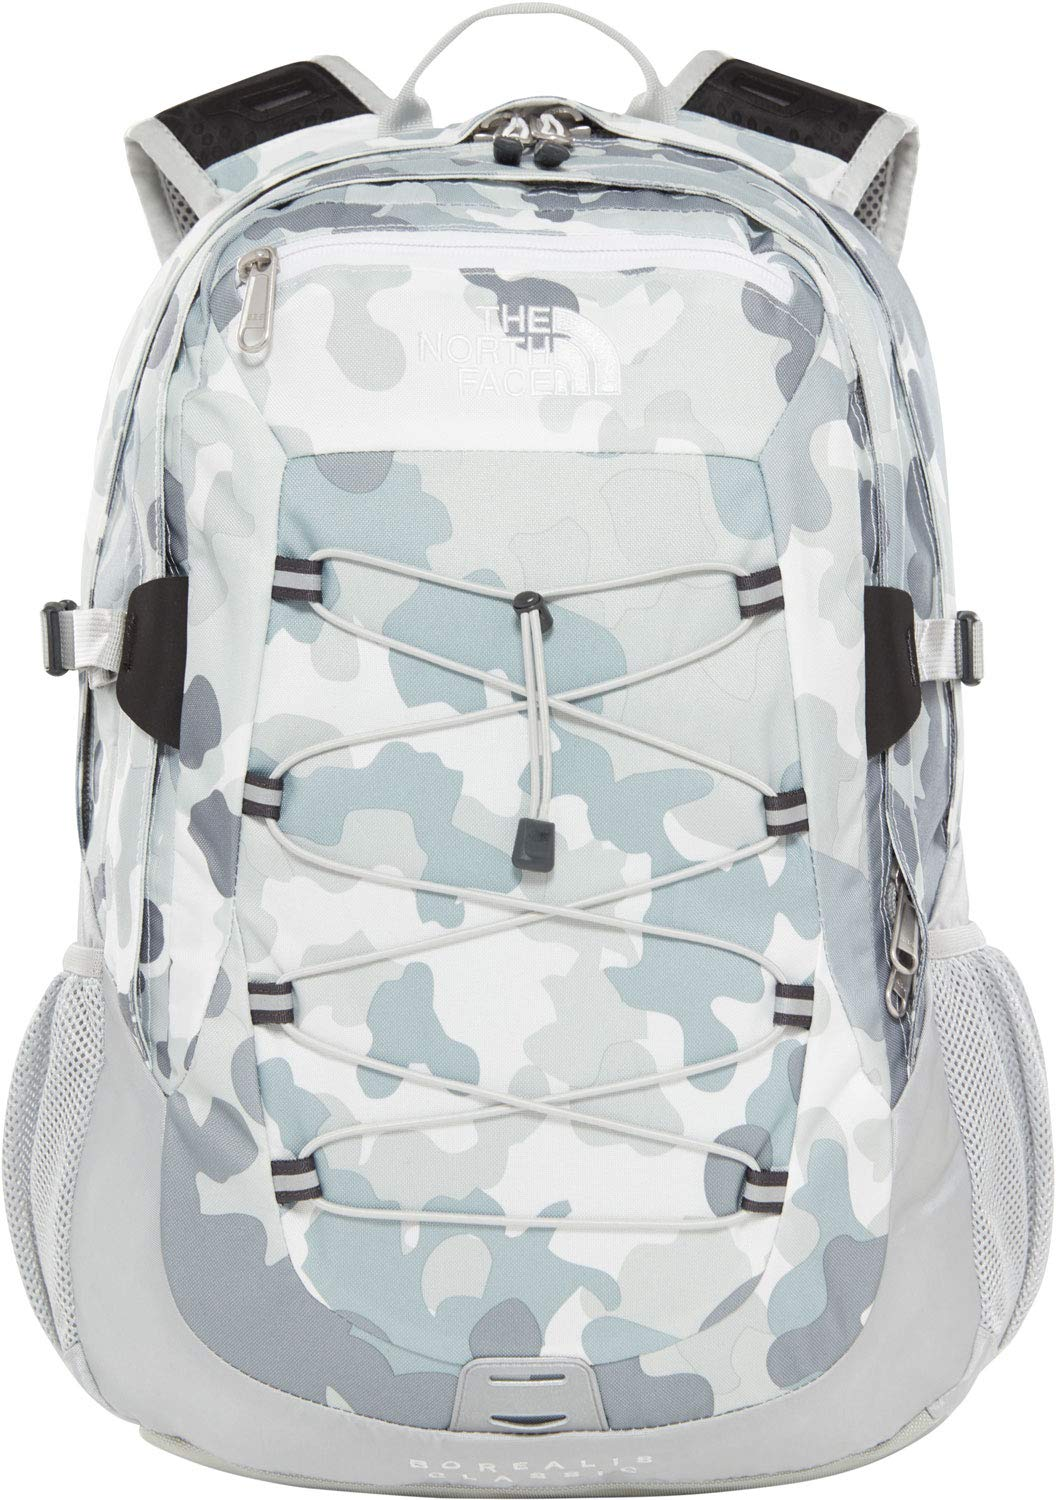 The North Face Borealis Classic Sac à dos The North Face Borealis Classic Sac à dos NOS67|#The North Face T0CF9CS1J54